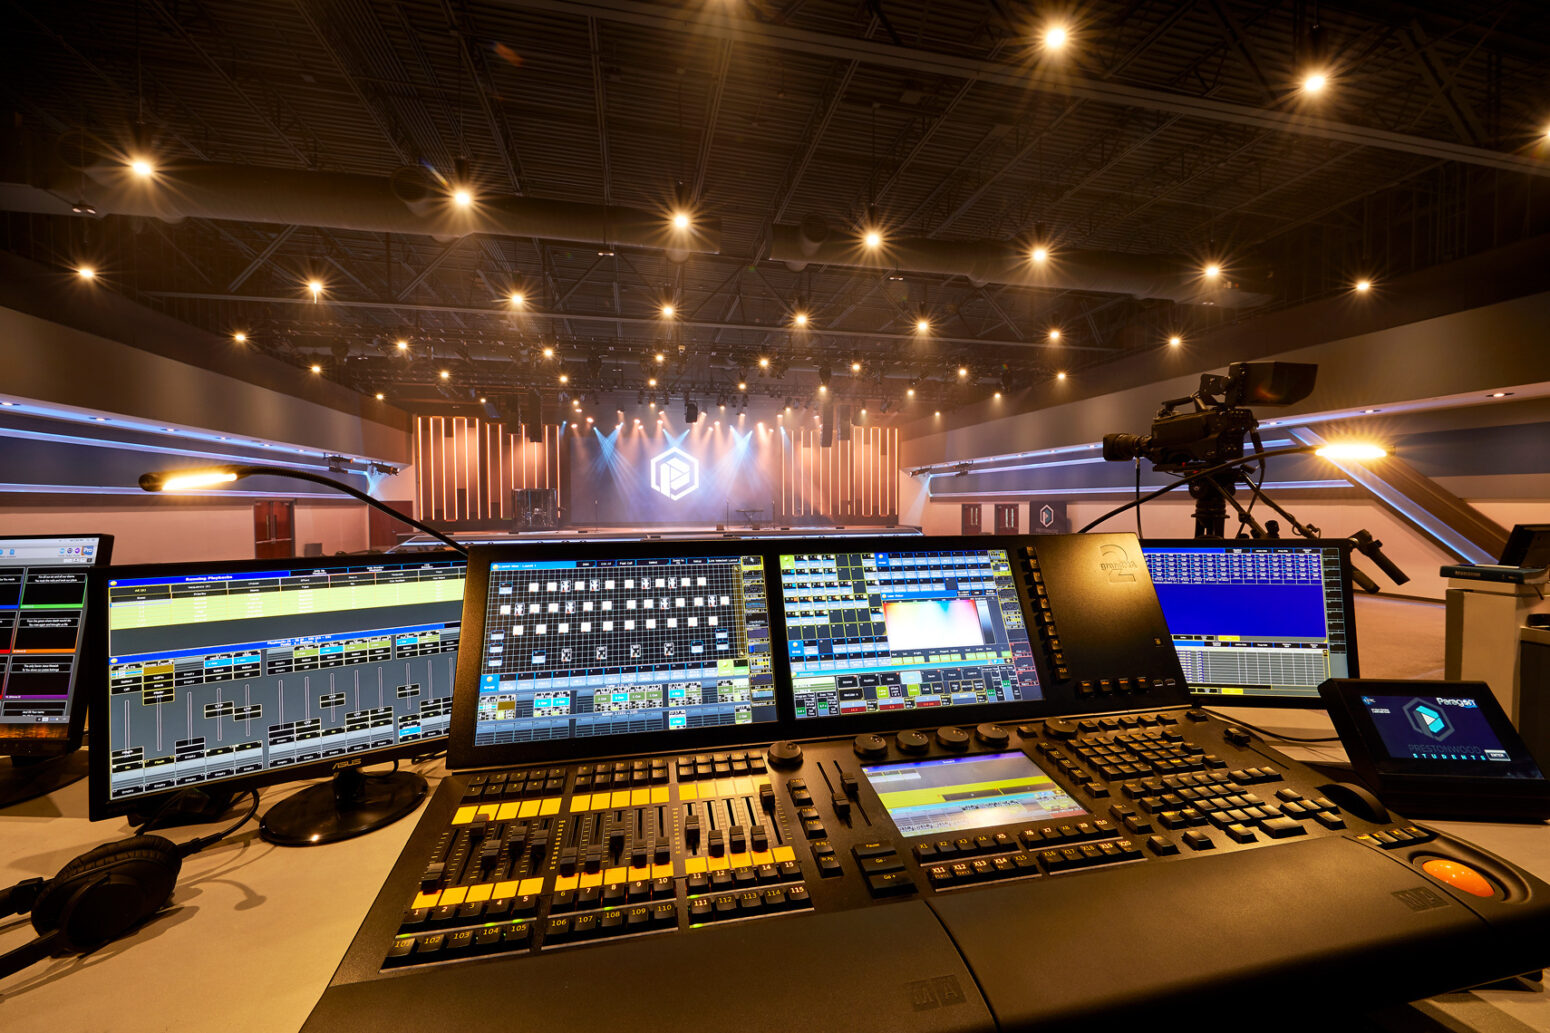 We train clients on our auditorium lighting systems controls like these.